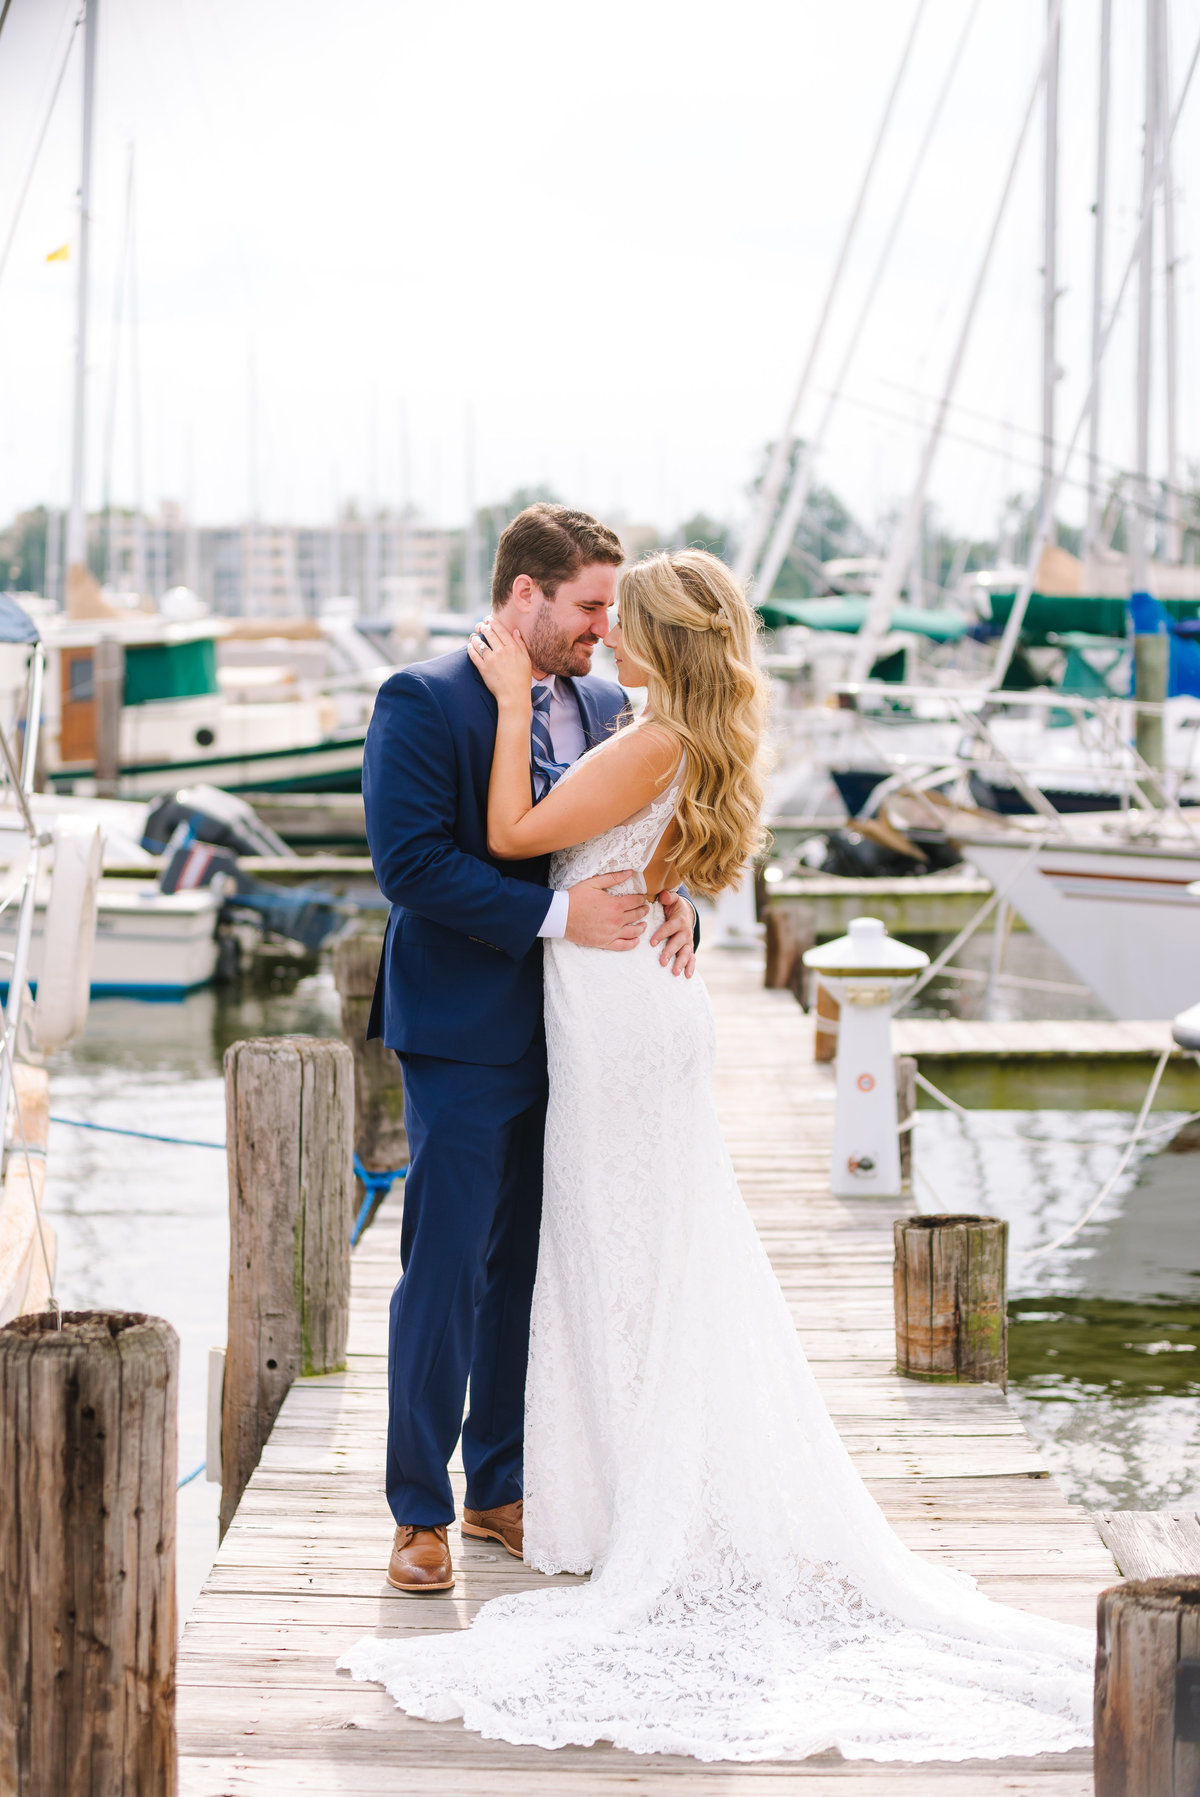 Annapolis Maritime Museum wedding couple on docks